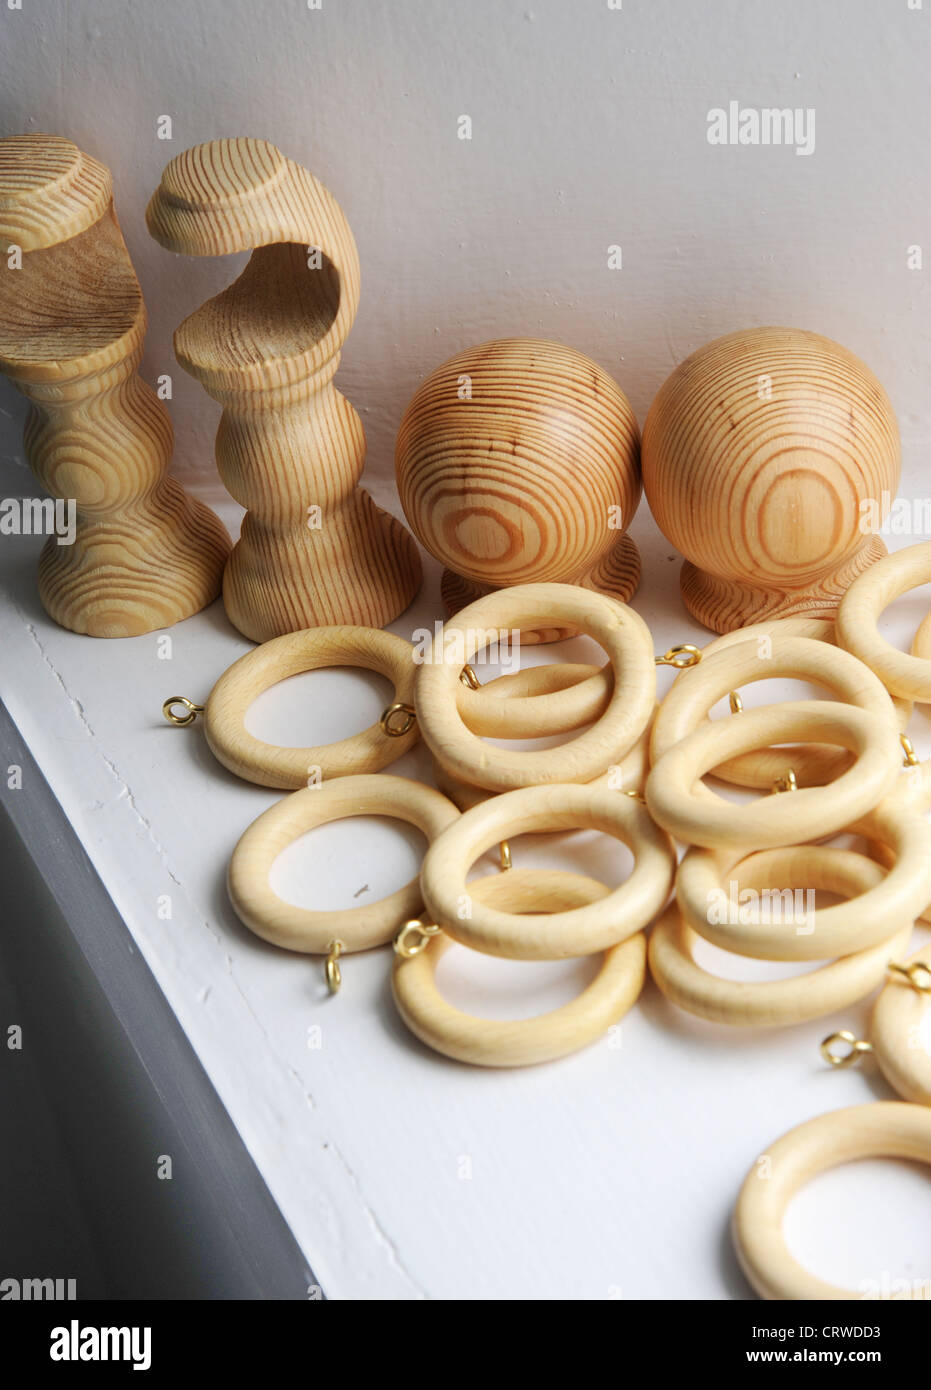 Wooden curtain rings and fixtures - Stock Image